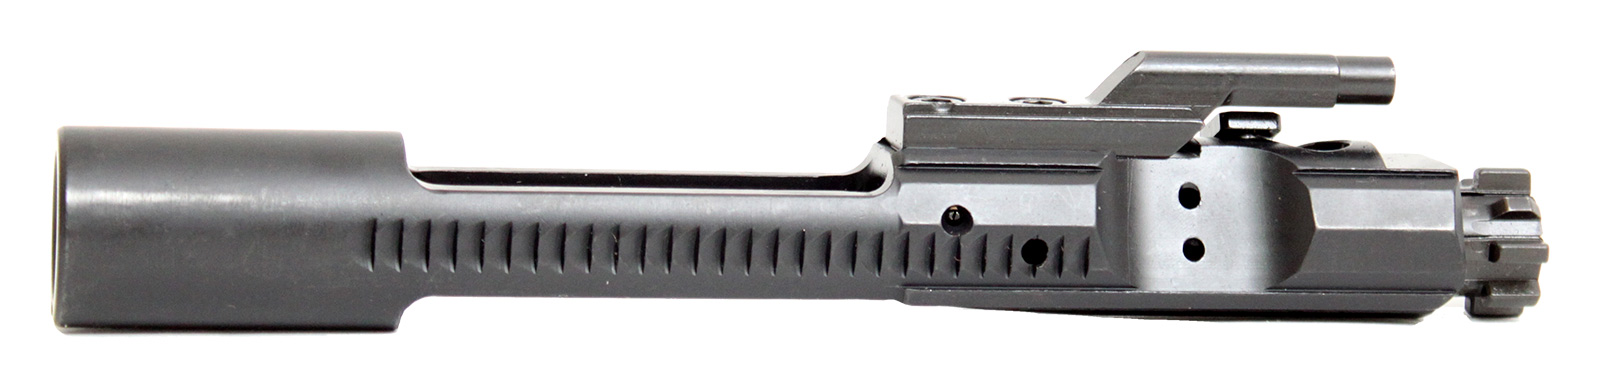 ar15-bolt-carrier-group-50-cal-130221